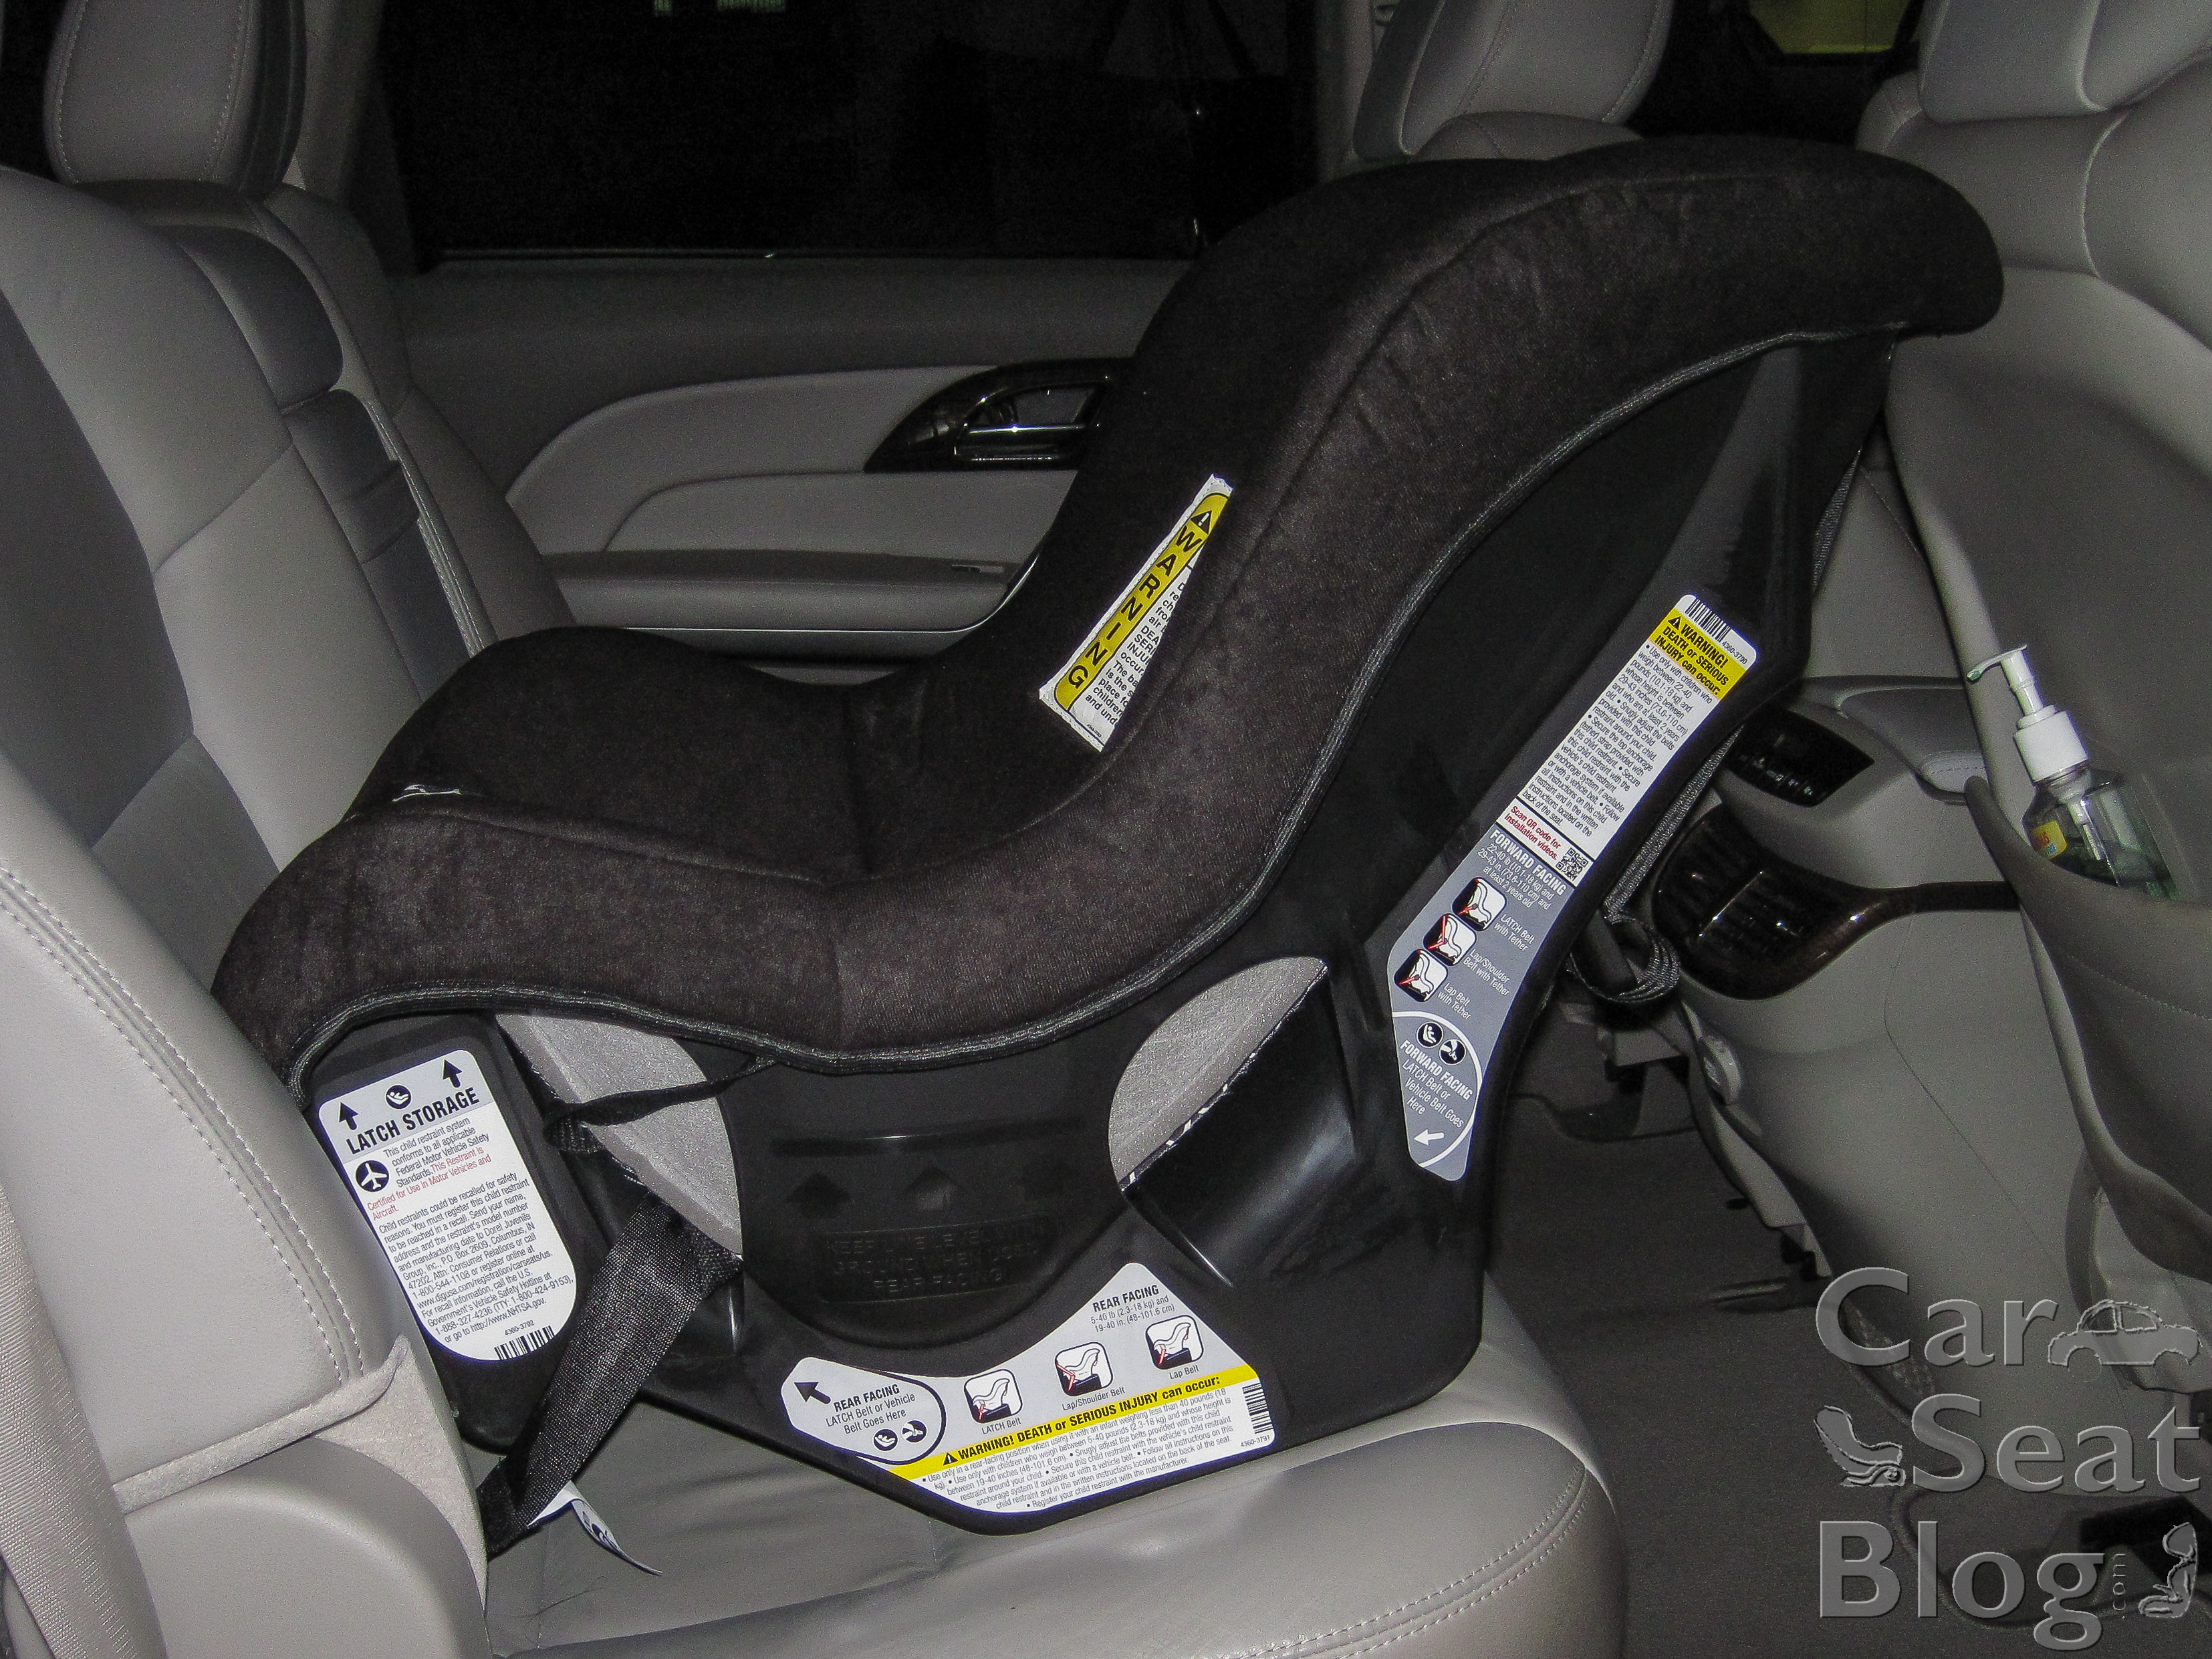 carseatblog the most trusted source for car seat reviews ratings rh carseatblog com Car Seat Belt cosco scenera next convertible car seat instructions